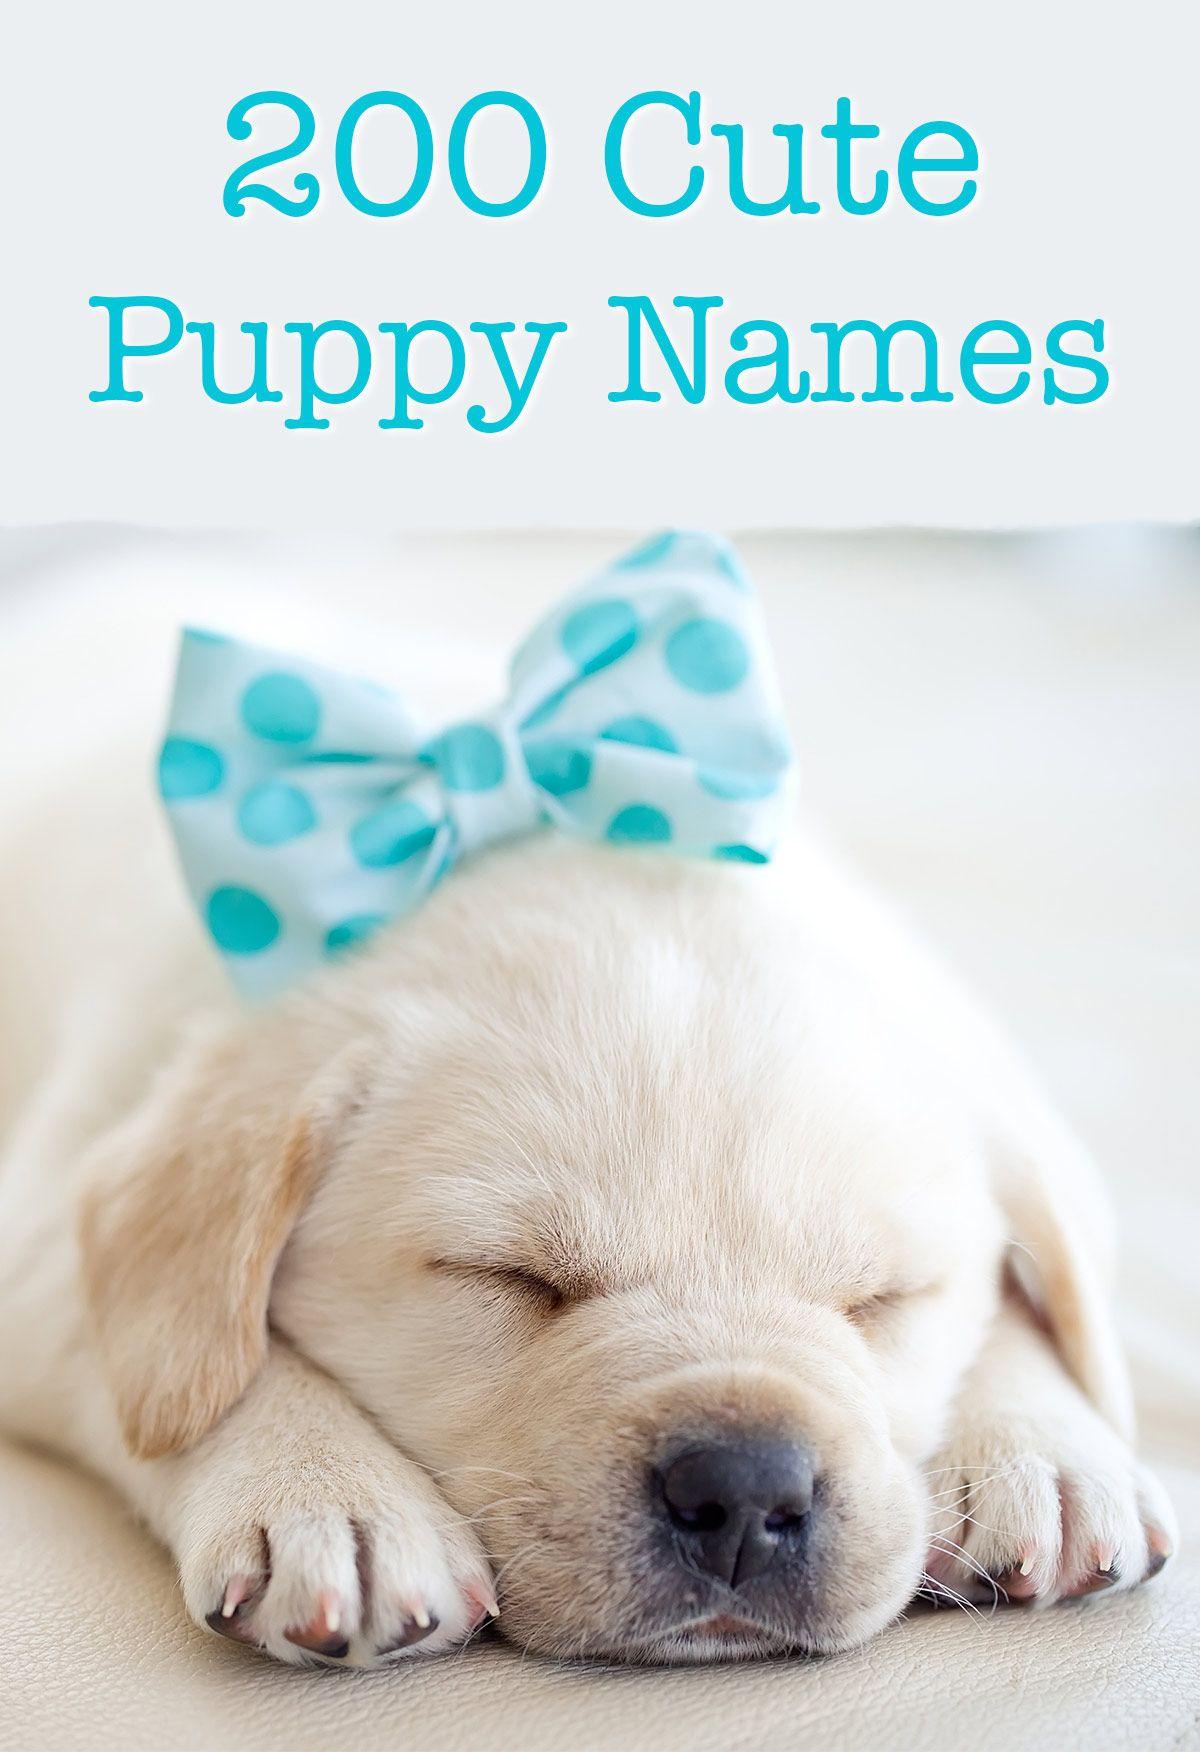 Cute Puppy Names Over 200 Adorable Ideas For Naming Your Dog